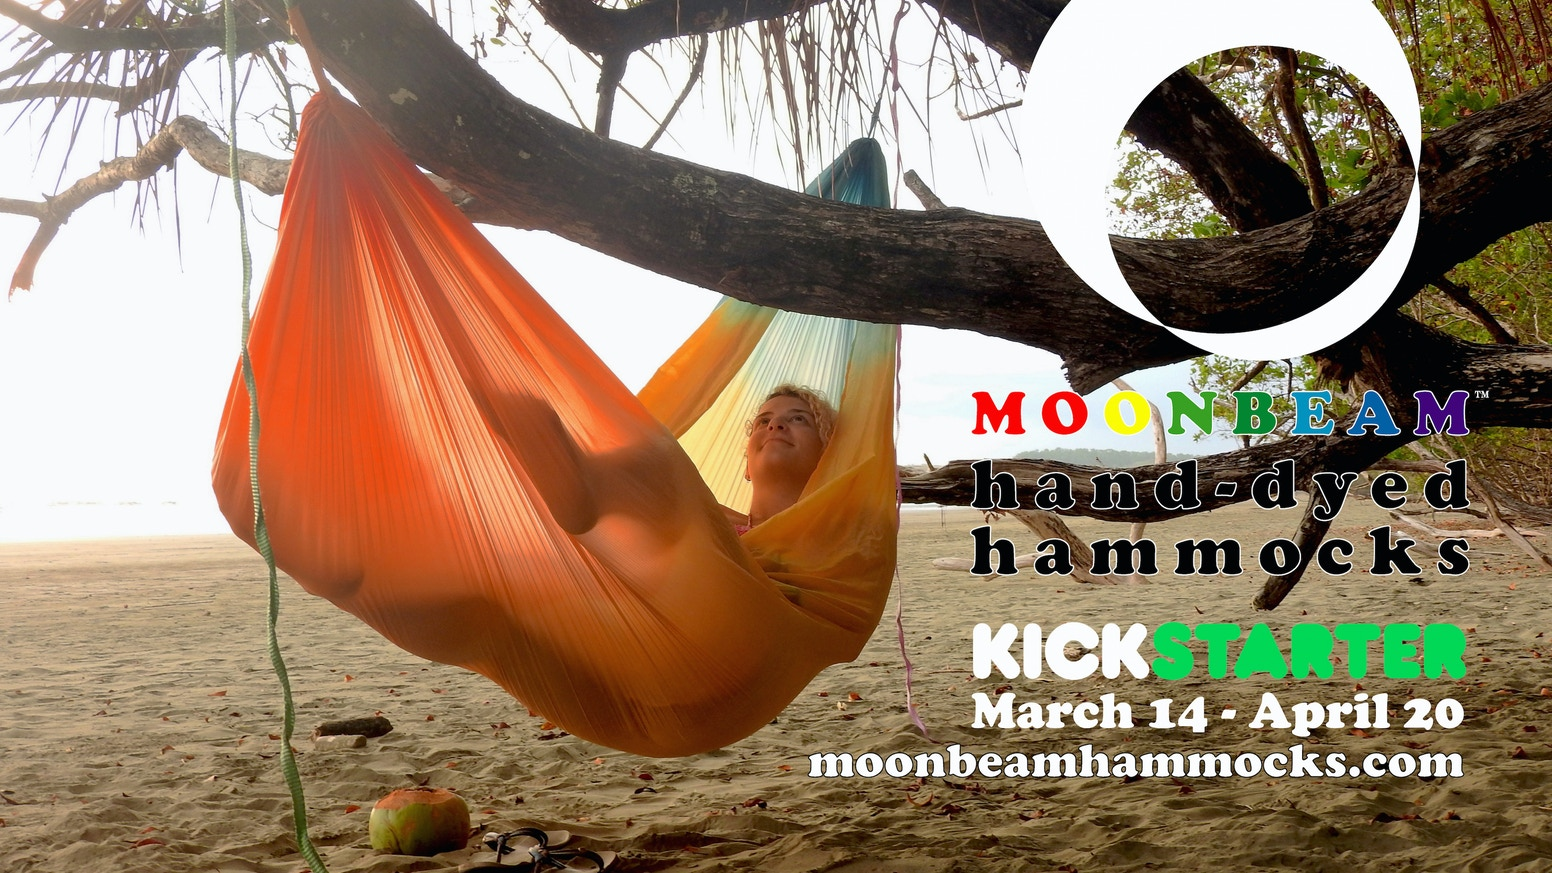 The Moonbeam Hand Dyed Adventure Hammock In 17 Colors By Daniel Ultralight We Make Most Beautiful Hammocks World Perfect For Beach